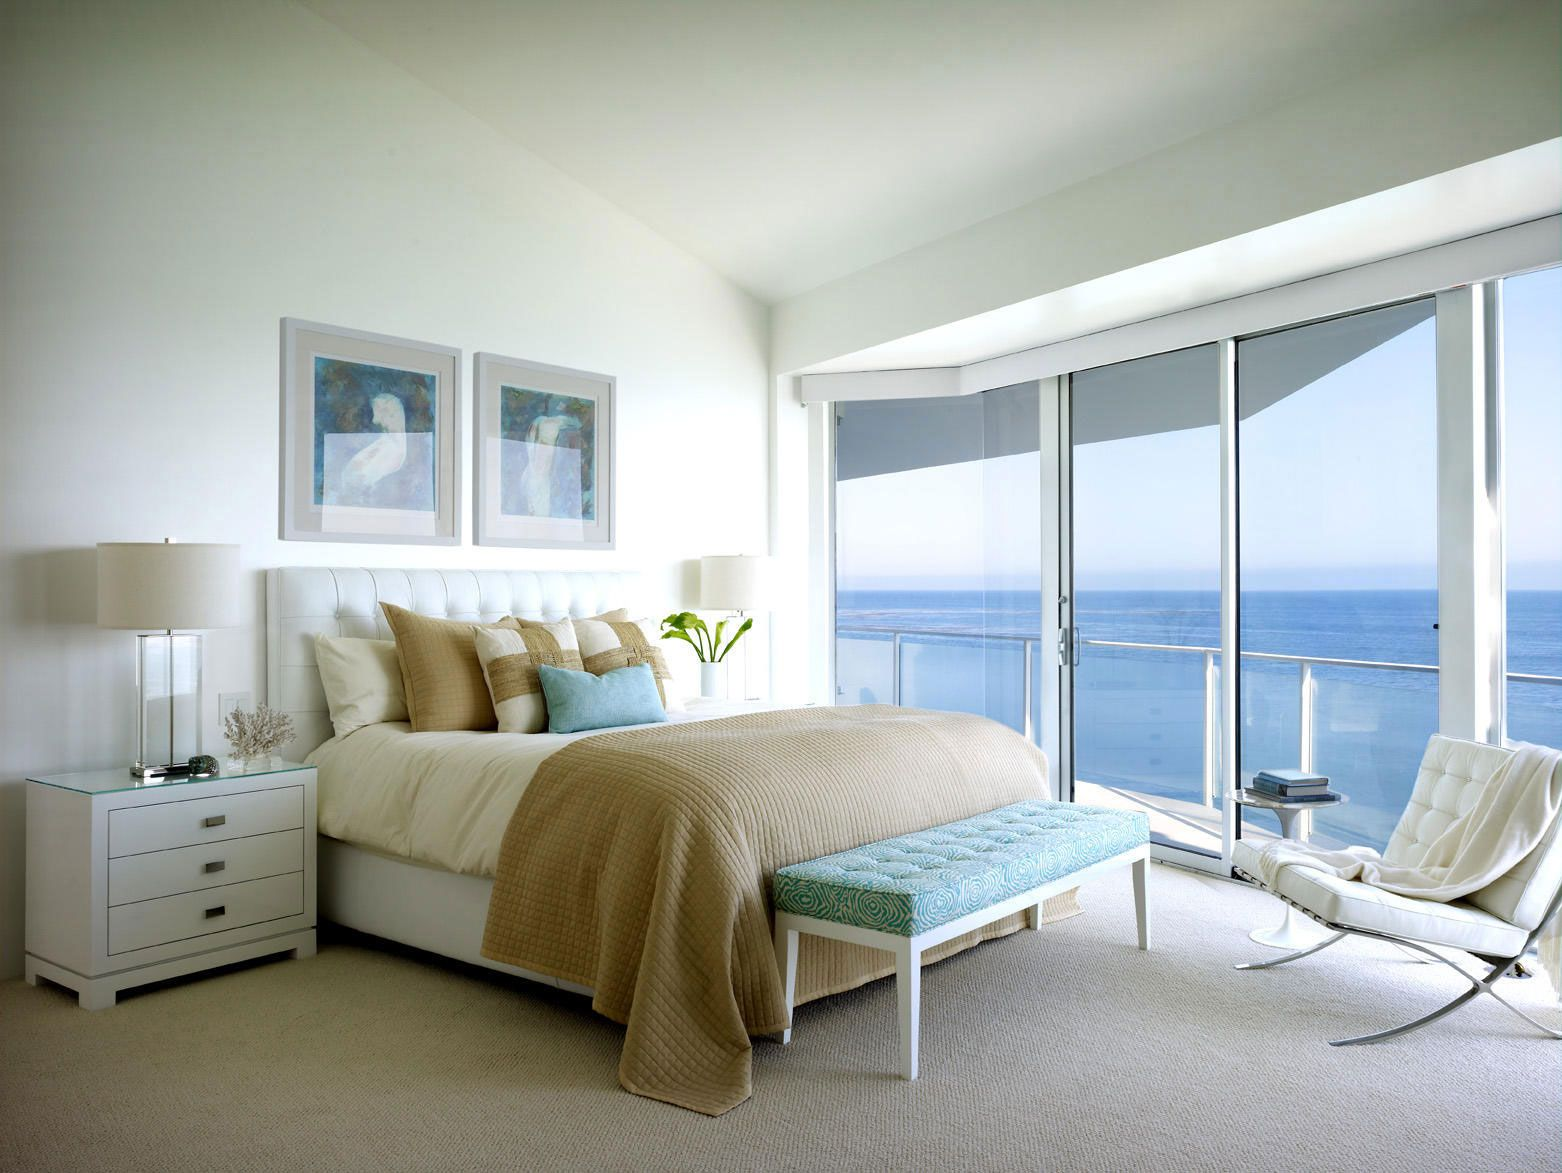 25 Best Master Bedroom Interior Design Ideas Beach House